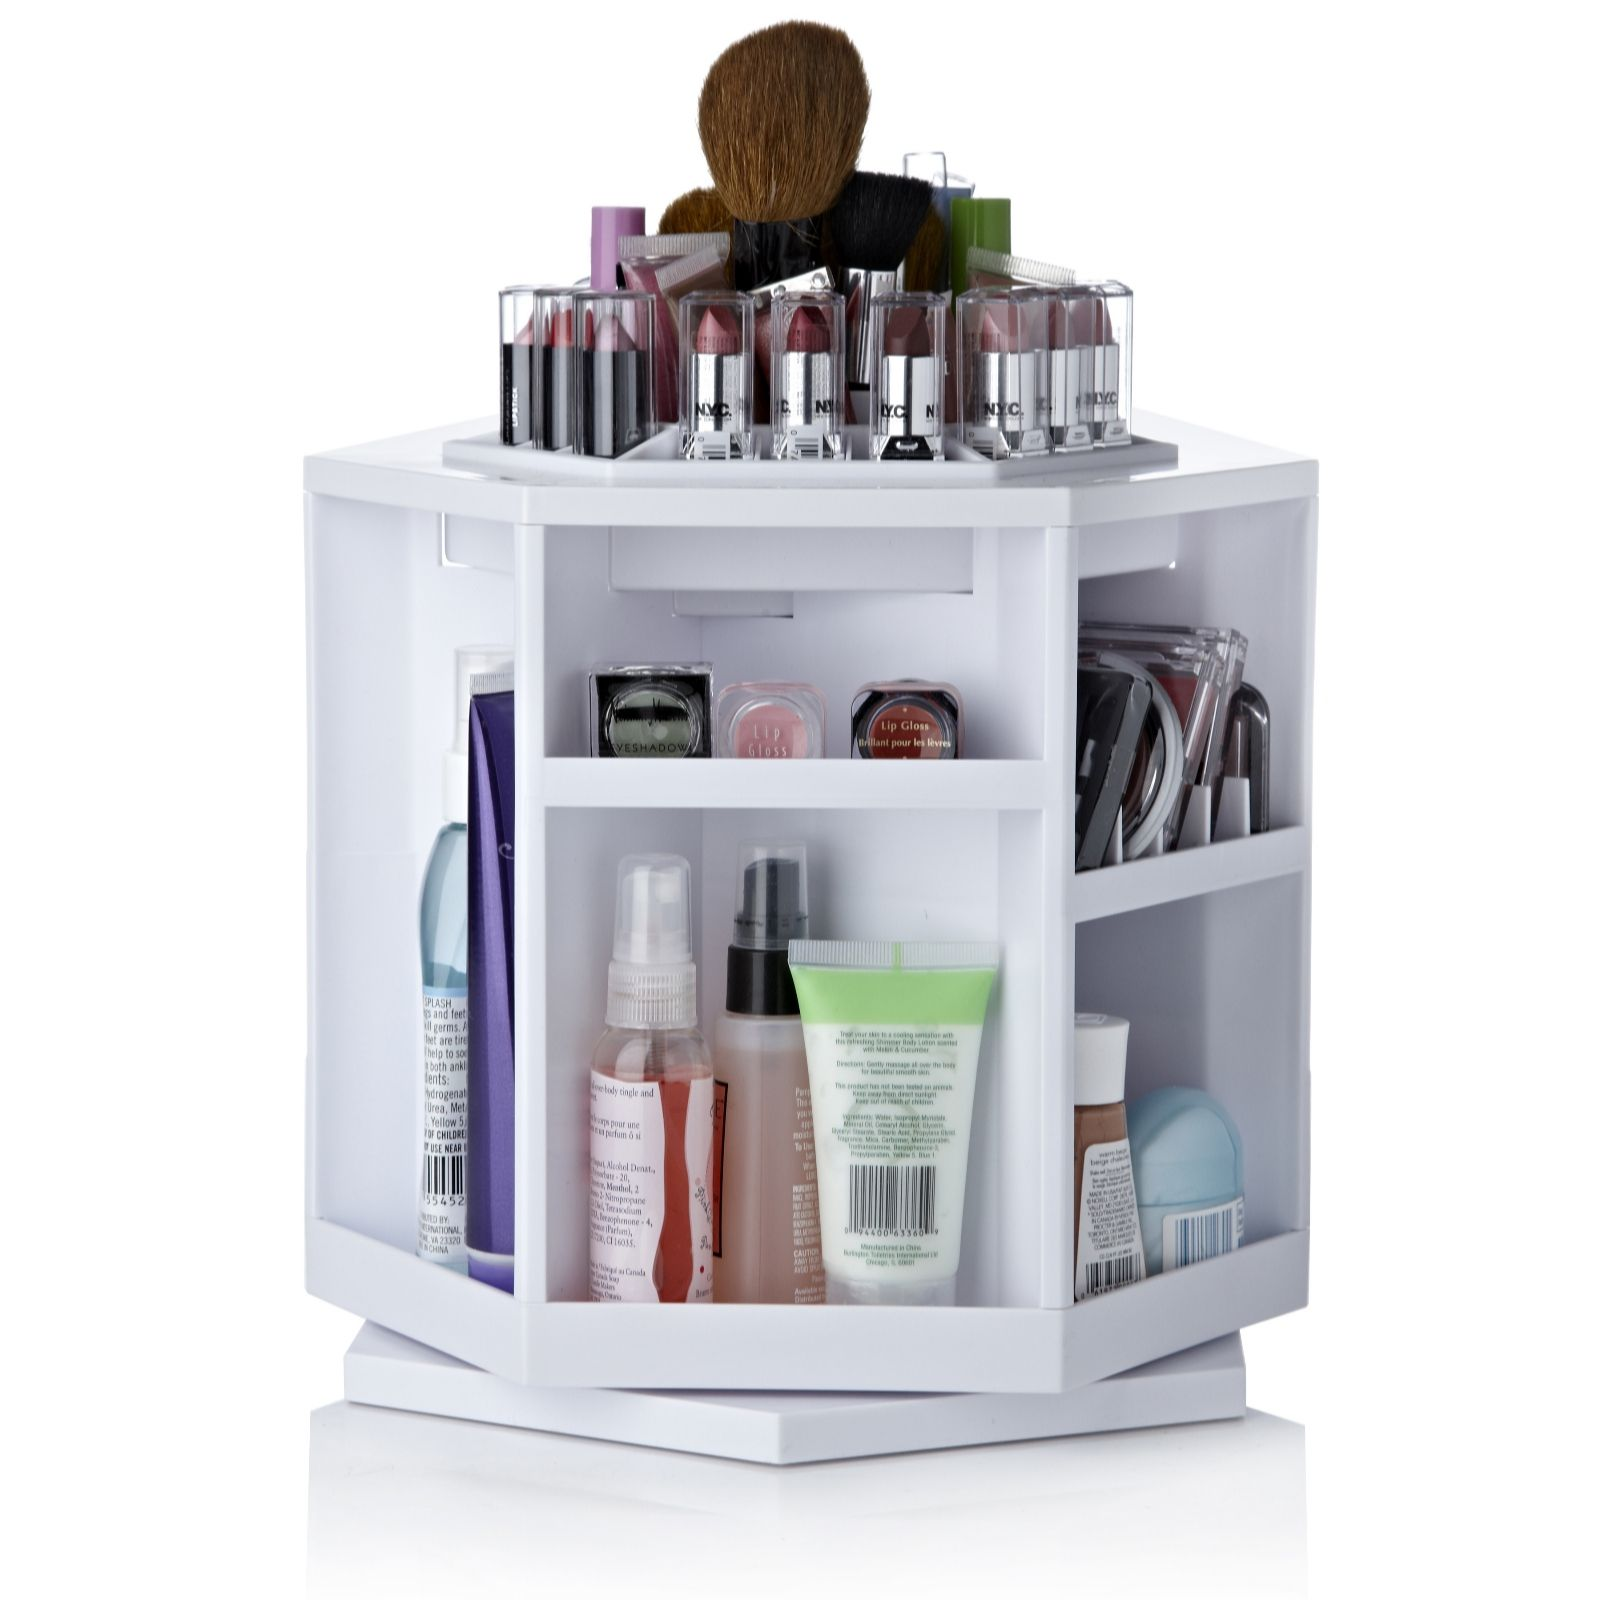 5 super handy makeup storage ideas shinyshiny. Black Bedroom Furniture Sets. Home Design Ideas